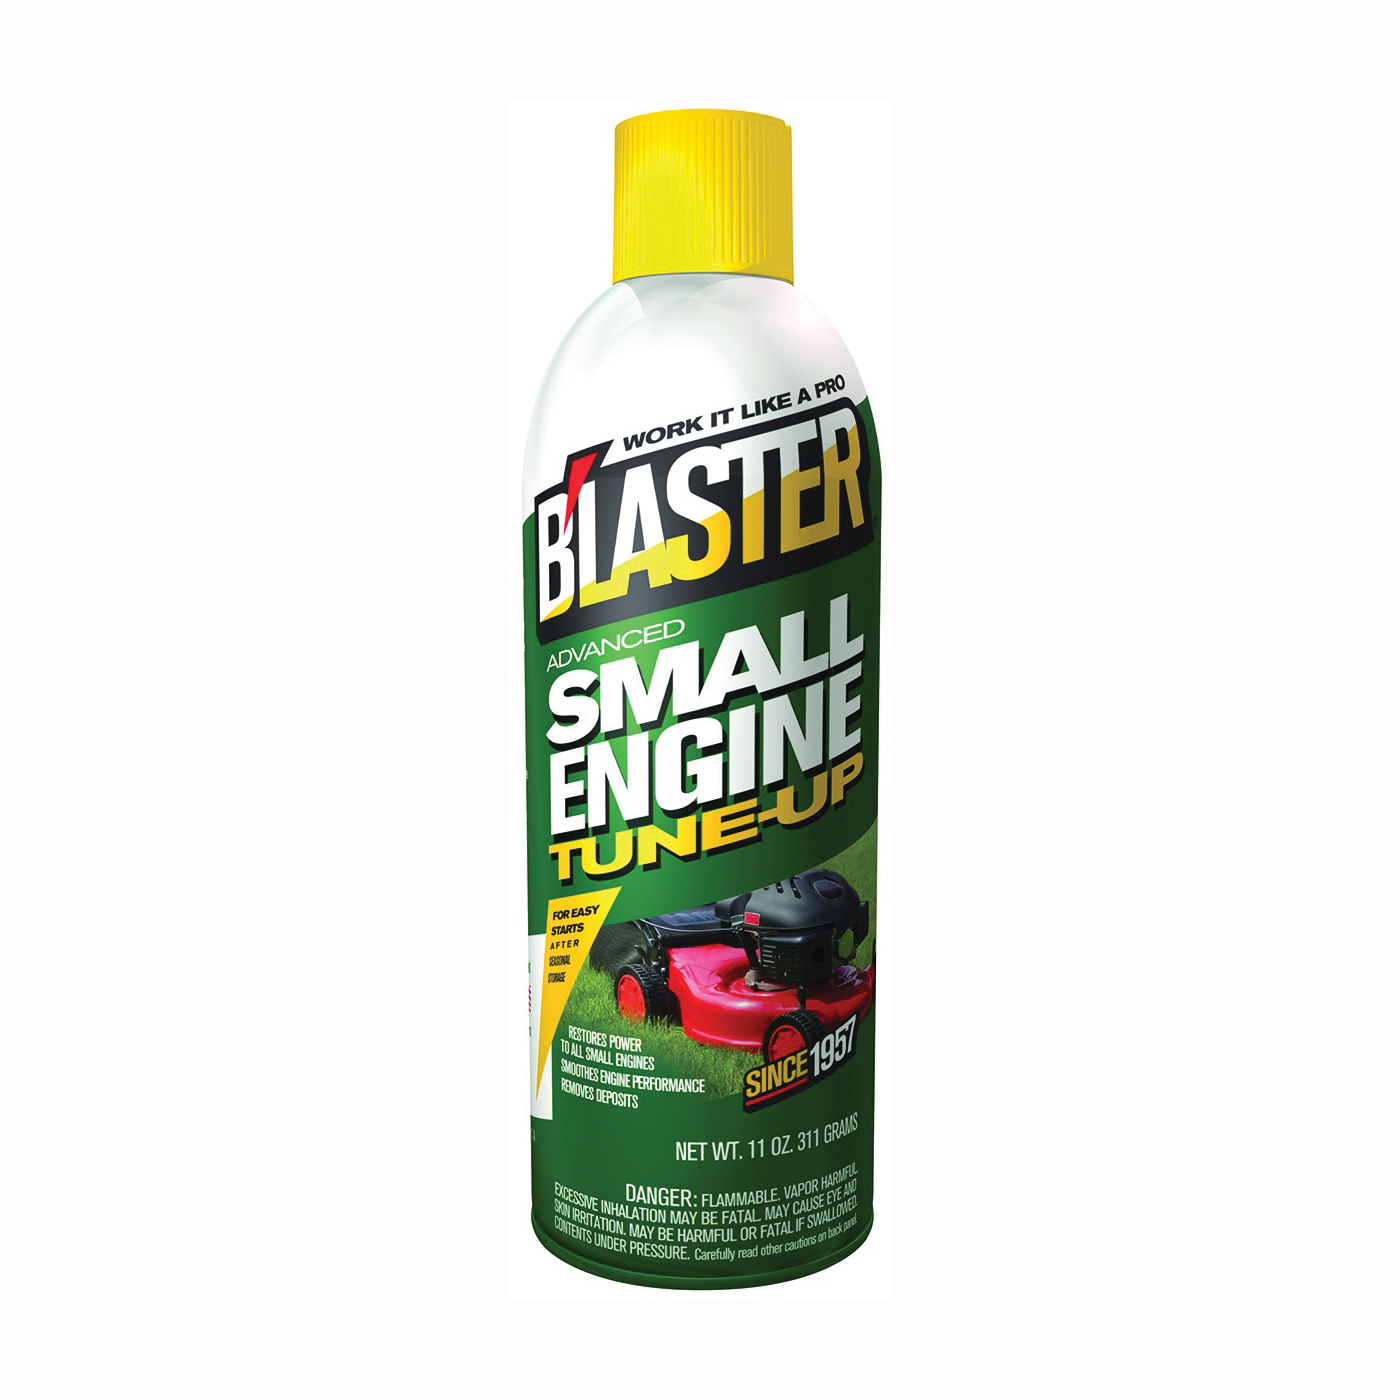 Picture of B'laster 16-SET Engine Tune-Up Red, 11 oz Package, Aerosol Can